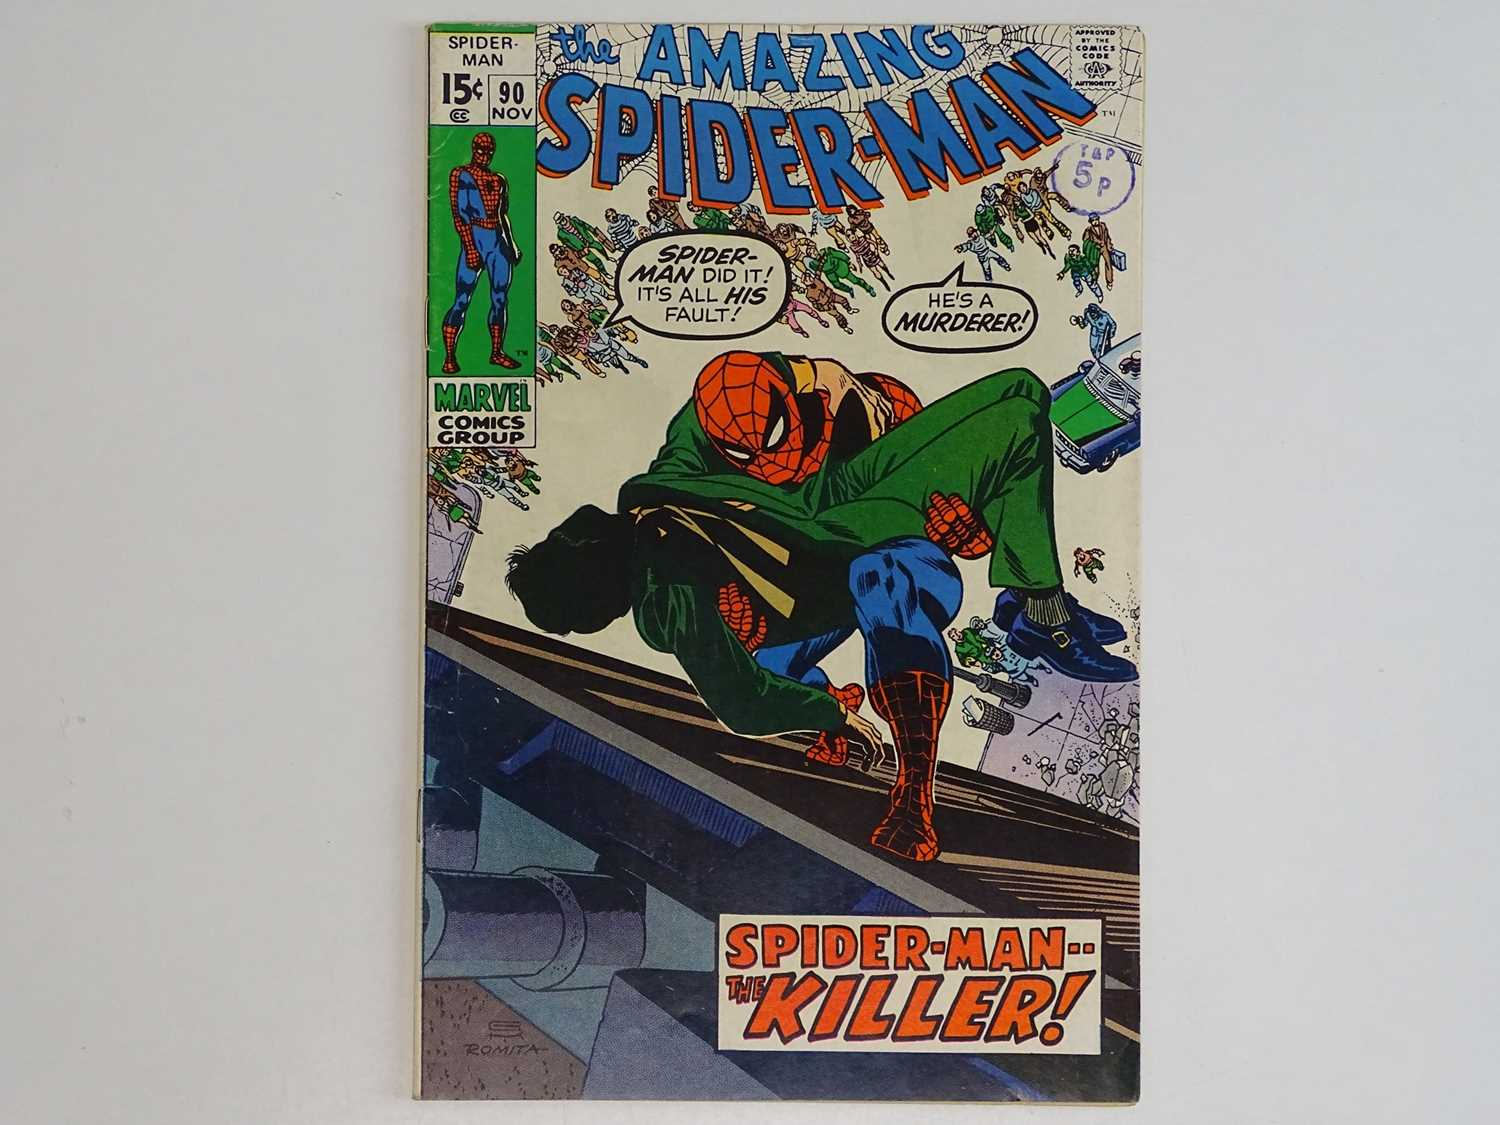 AMAZING SPIDER-MAN # 90 - (1970 - MARVEL - Uk Cover Price) - 'Death' of Captain Stacy + Doctor